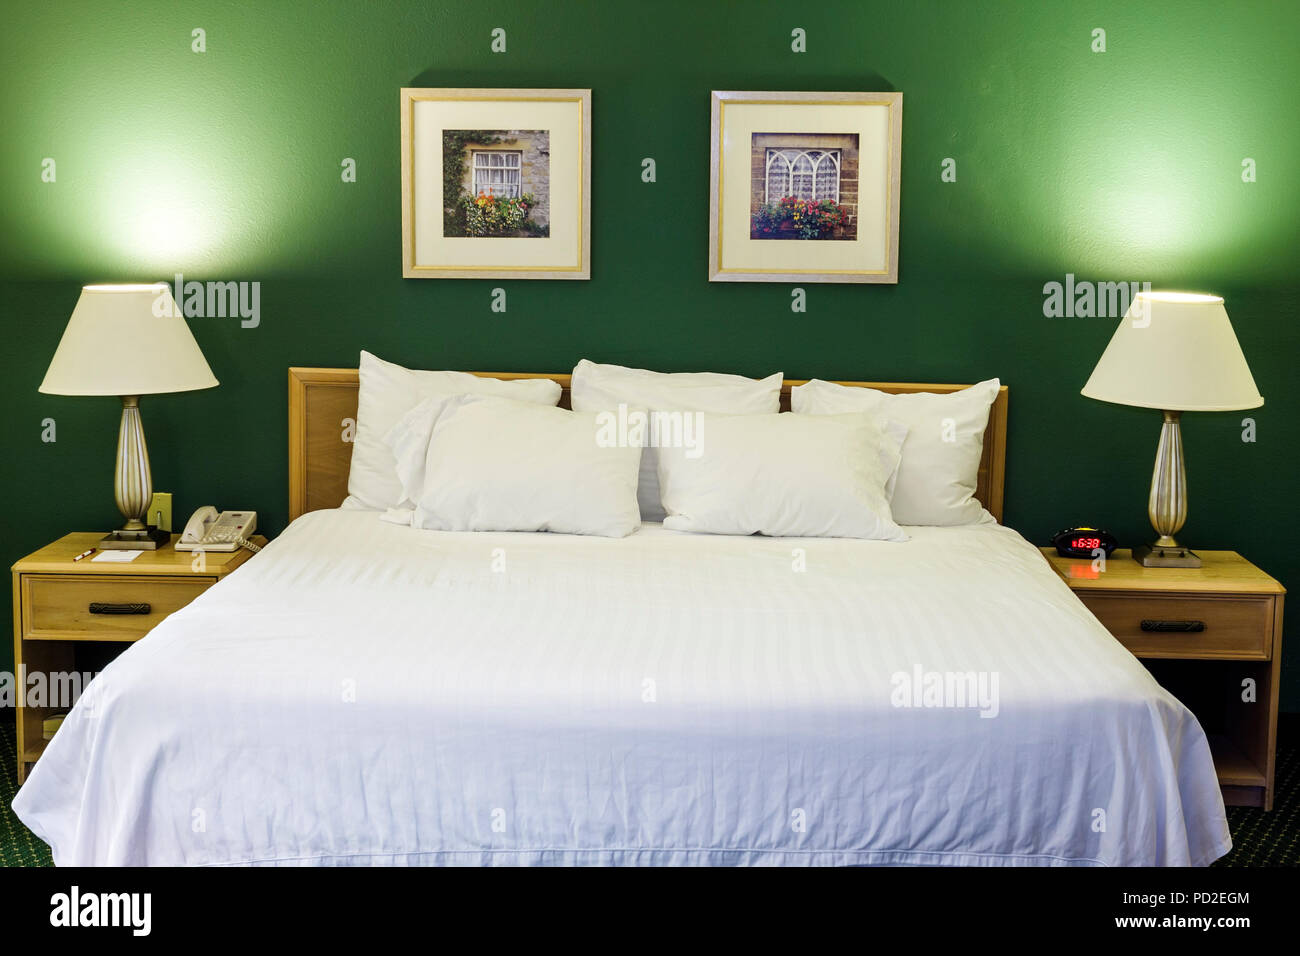 Queen size bed immagini queen size bed fotos stock alamy